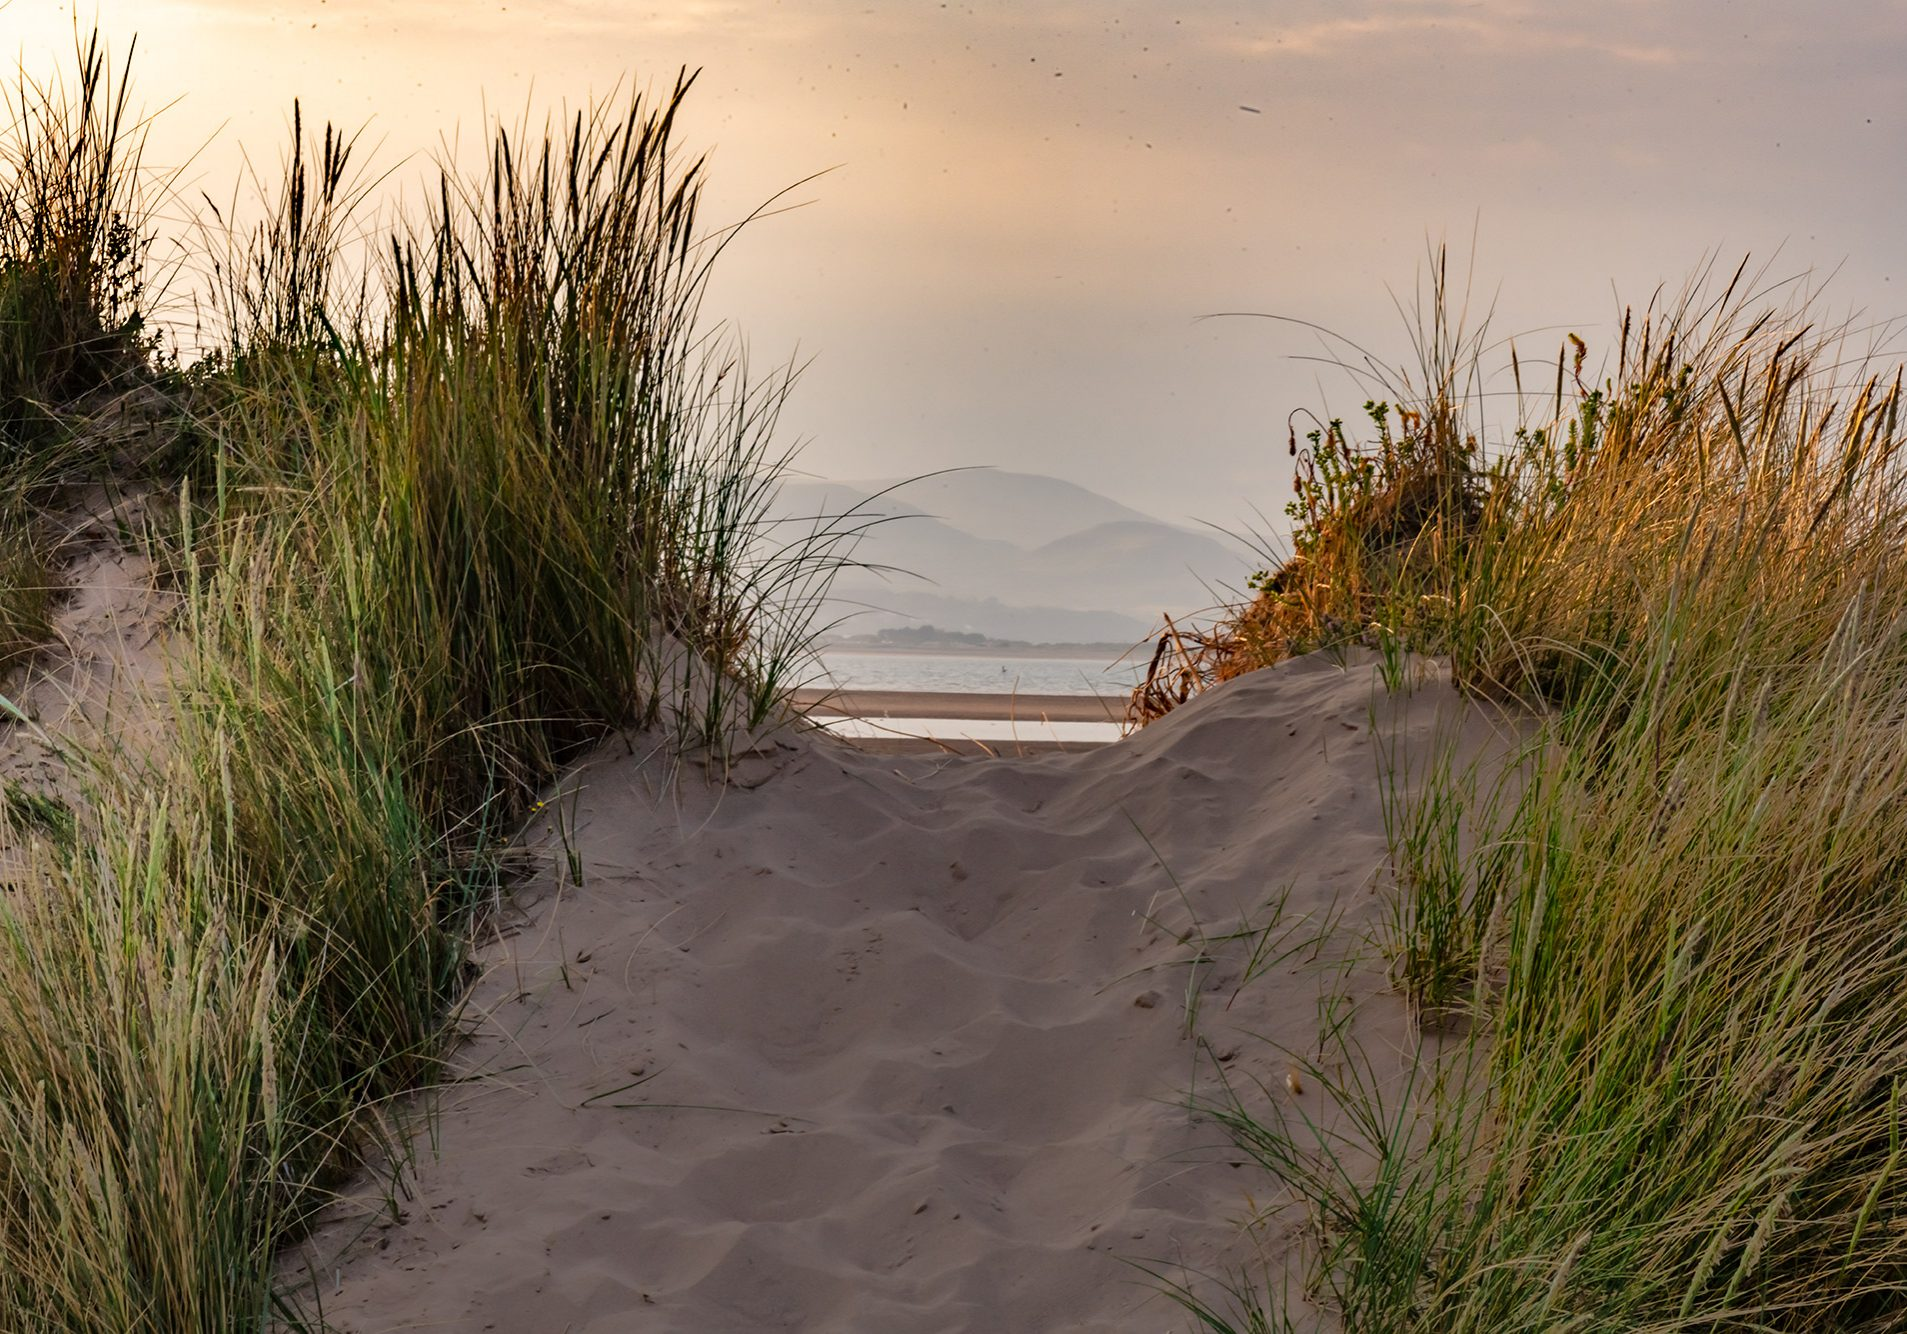 Lakeland fells framed by the dunes at Roanhead